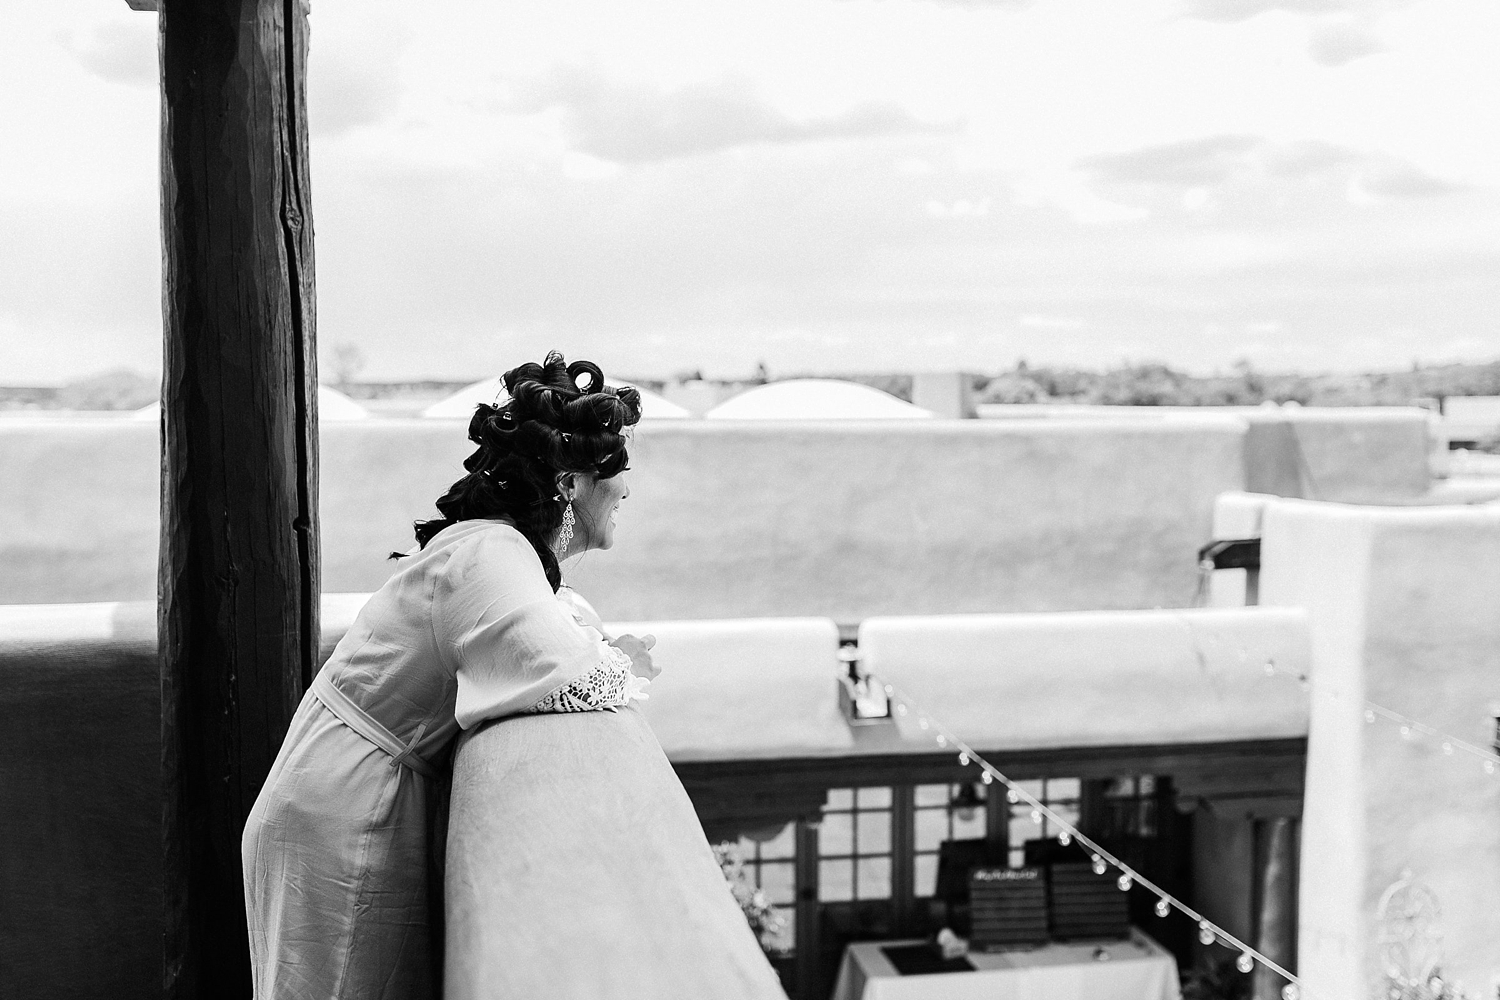 Alicia+lucia+photography+-+albuquerque+wedding+photographer+-+santa+fe+wedding+photography+-+new+mexico+wedding+photographer+-+new+mexico+wedding+-+la+fond+santa+fe+wedding+-+la+fonda+santa+fe+summer+wedding+-+bright+santa+fe+wedding_0009.jpg